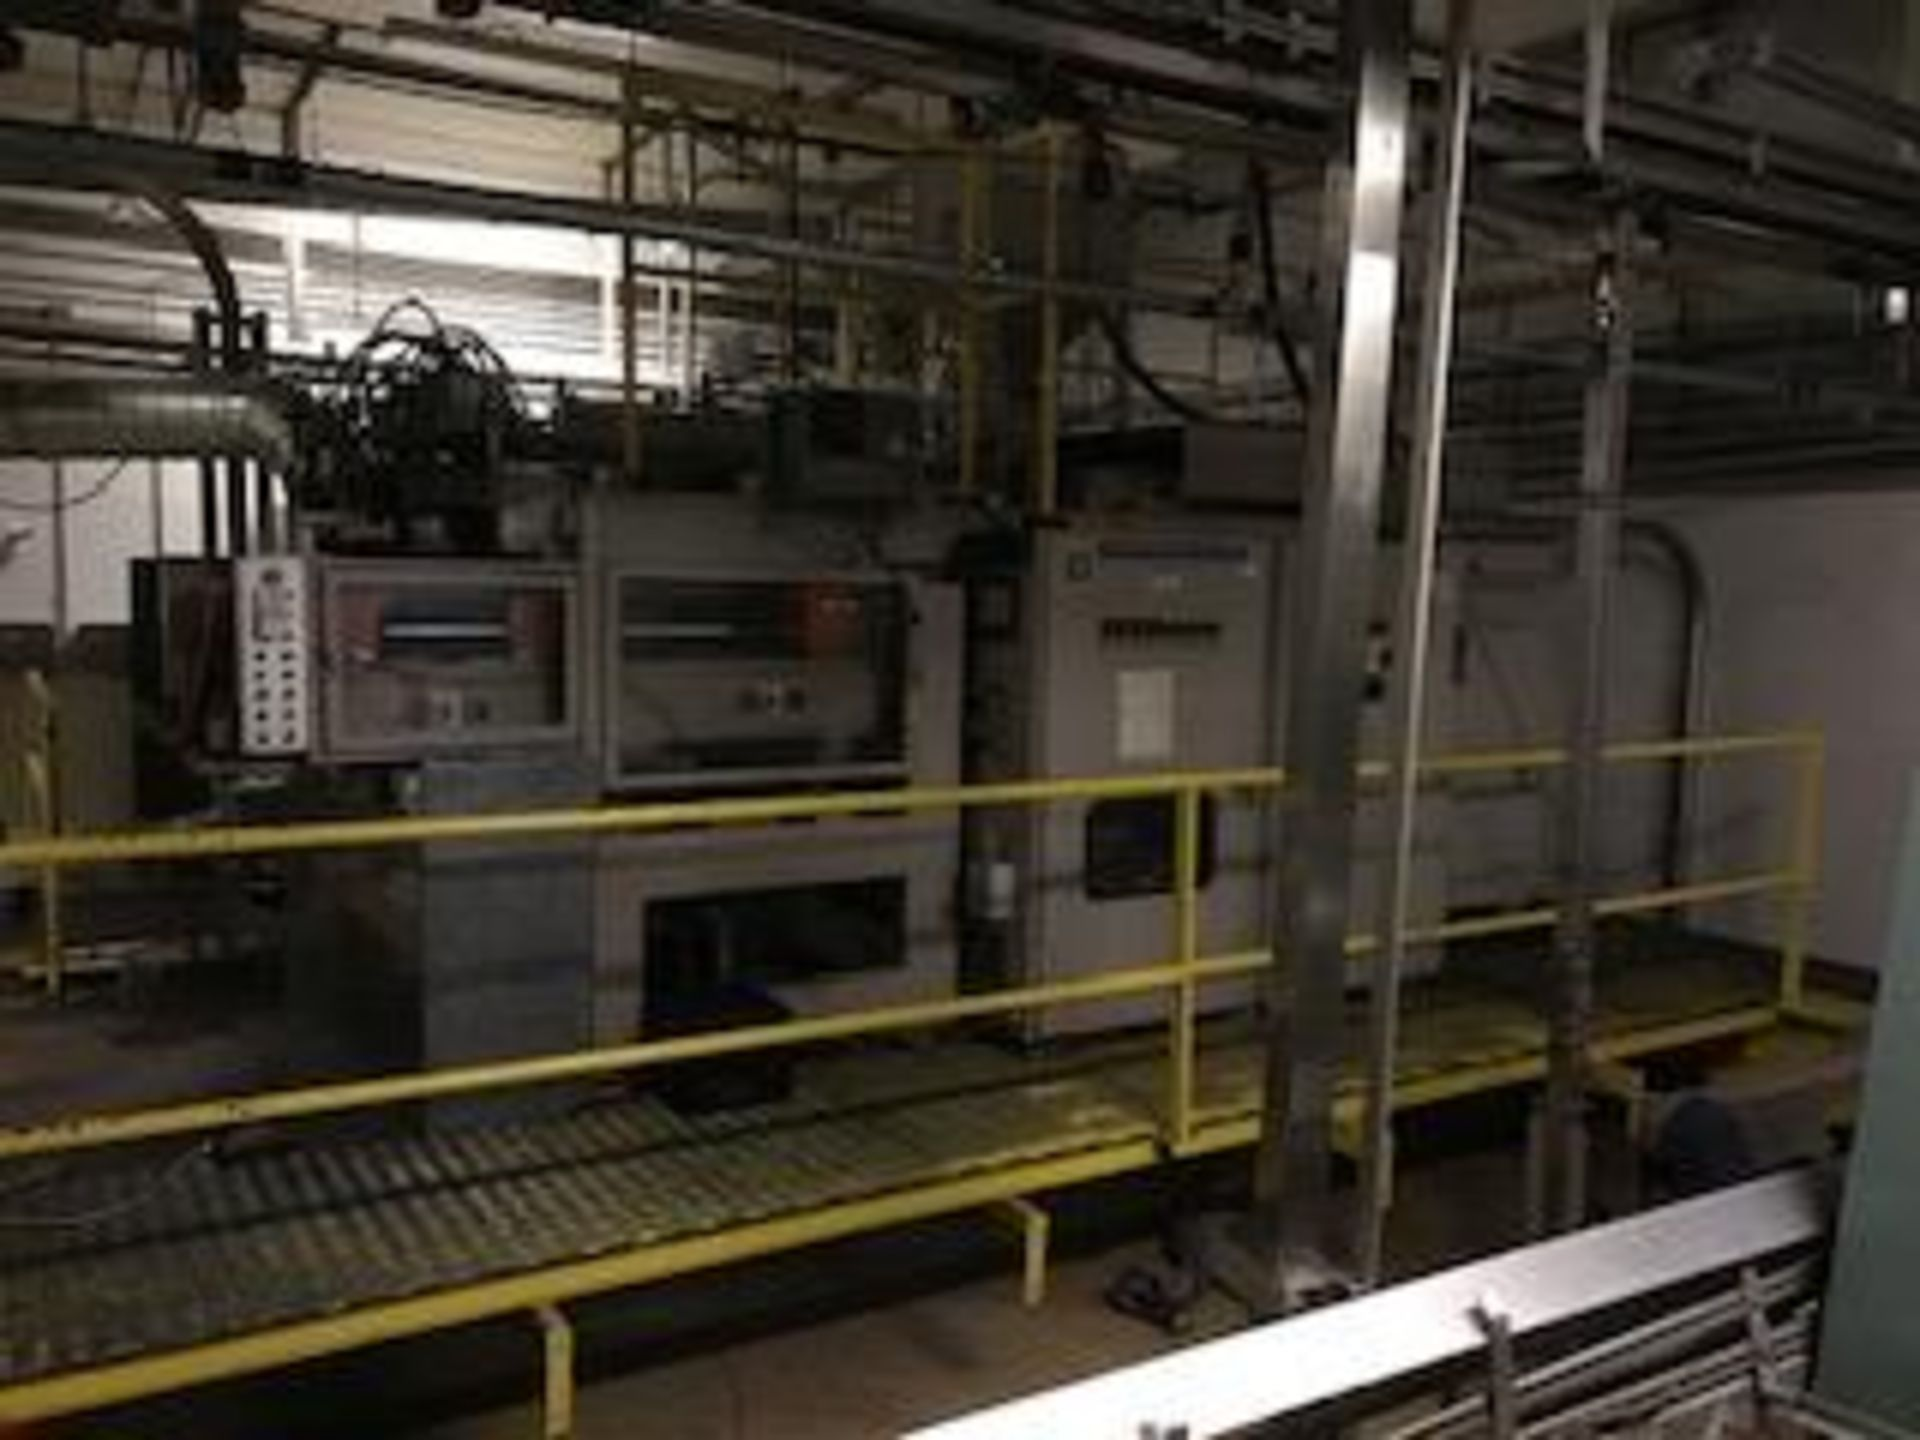 Uniloy Milacron 12-Head Blow Molding Machine Model RS13500, S/N 89105 | Rig Fee: $14500 - Image 2 of 5